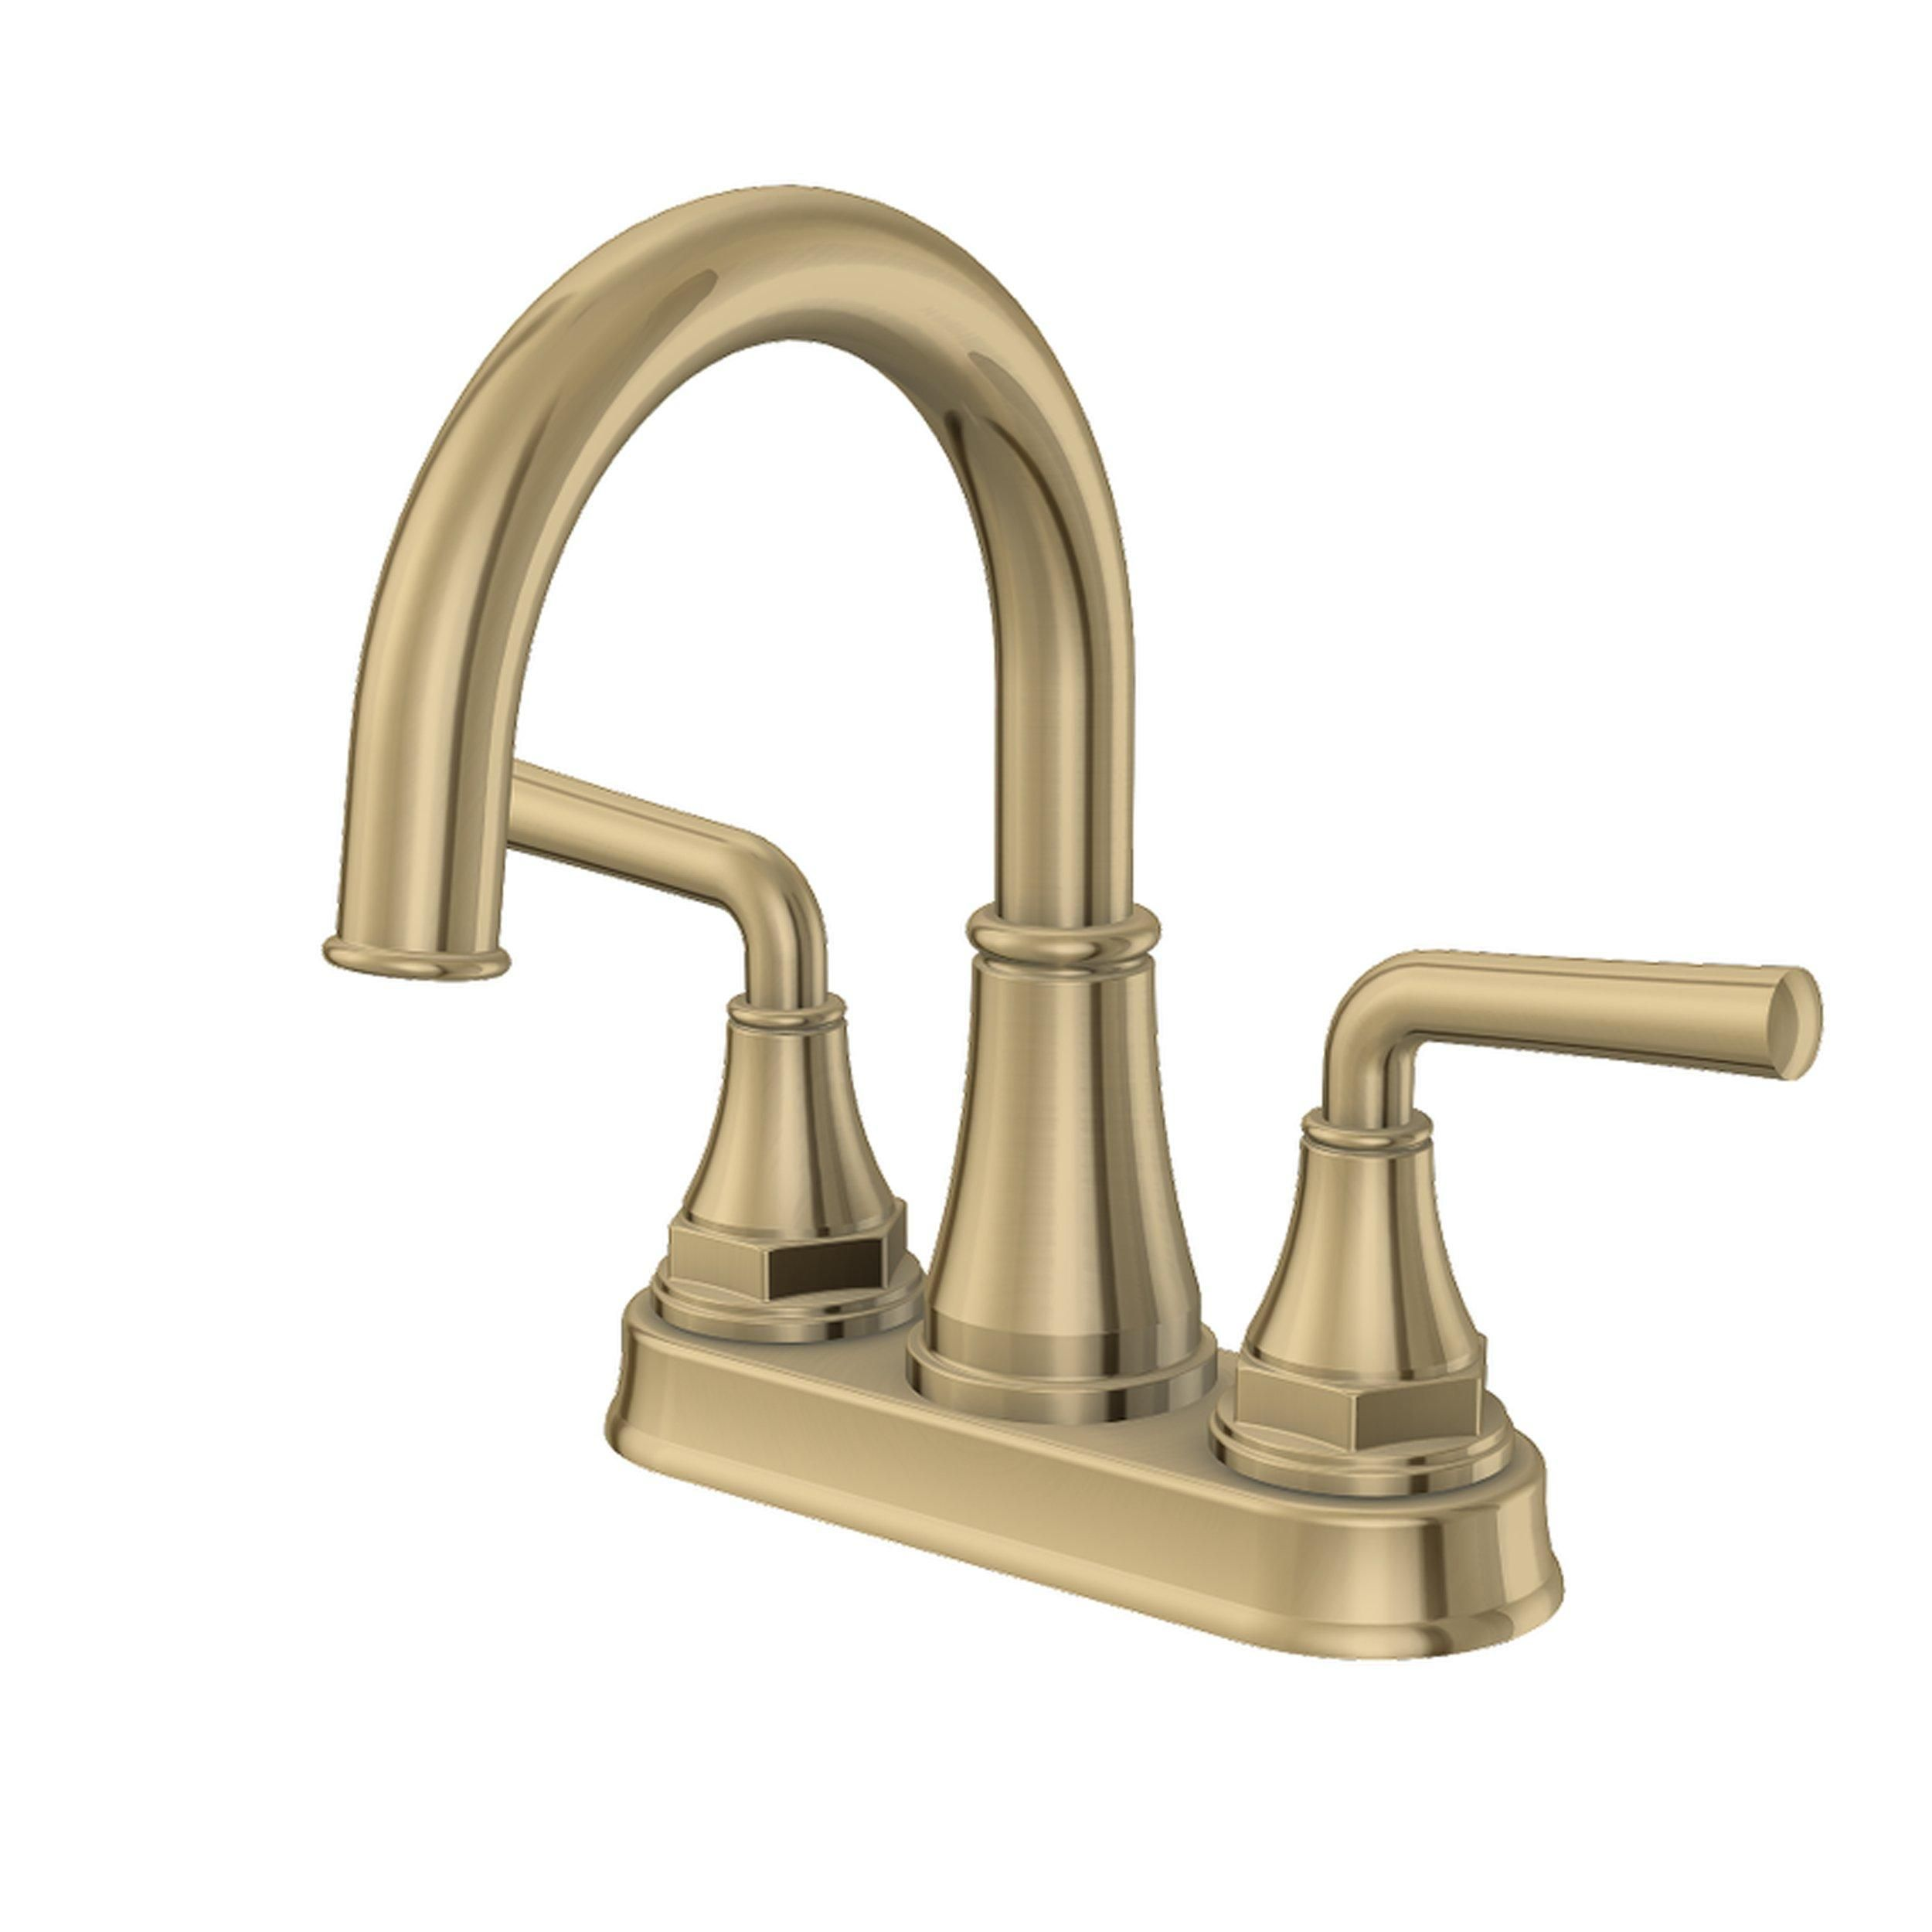 Tano 4 In Center Set Brushed Gold Faucet In 2021 Gold Faucet Gold Bathroom Fixtures Gold Bathroom 4 inch bathroom faucet